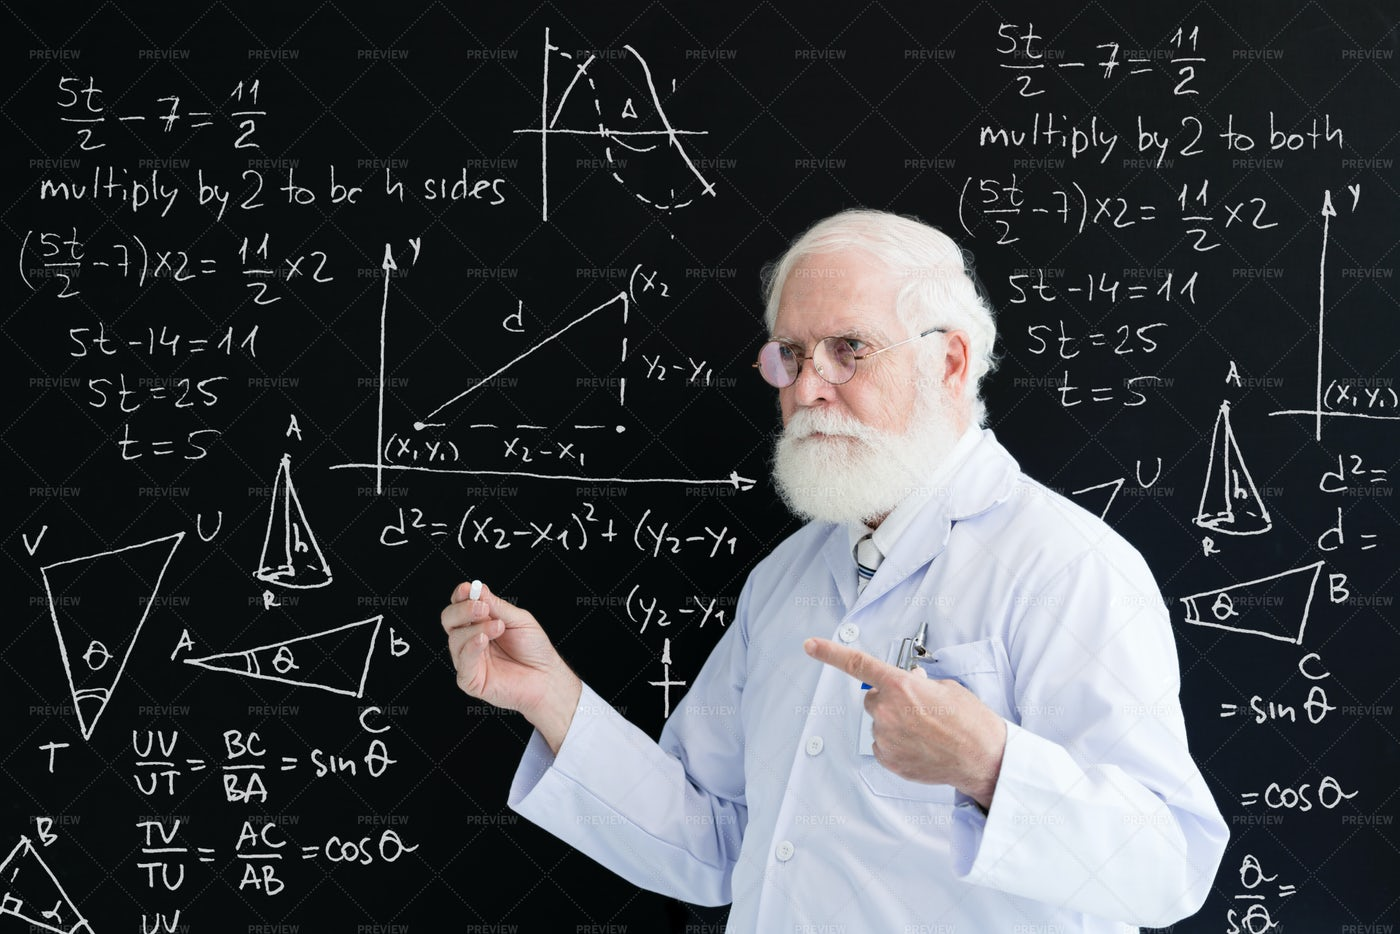 Professor Of Chemistry Lecturing To...: Stock Photos